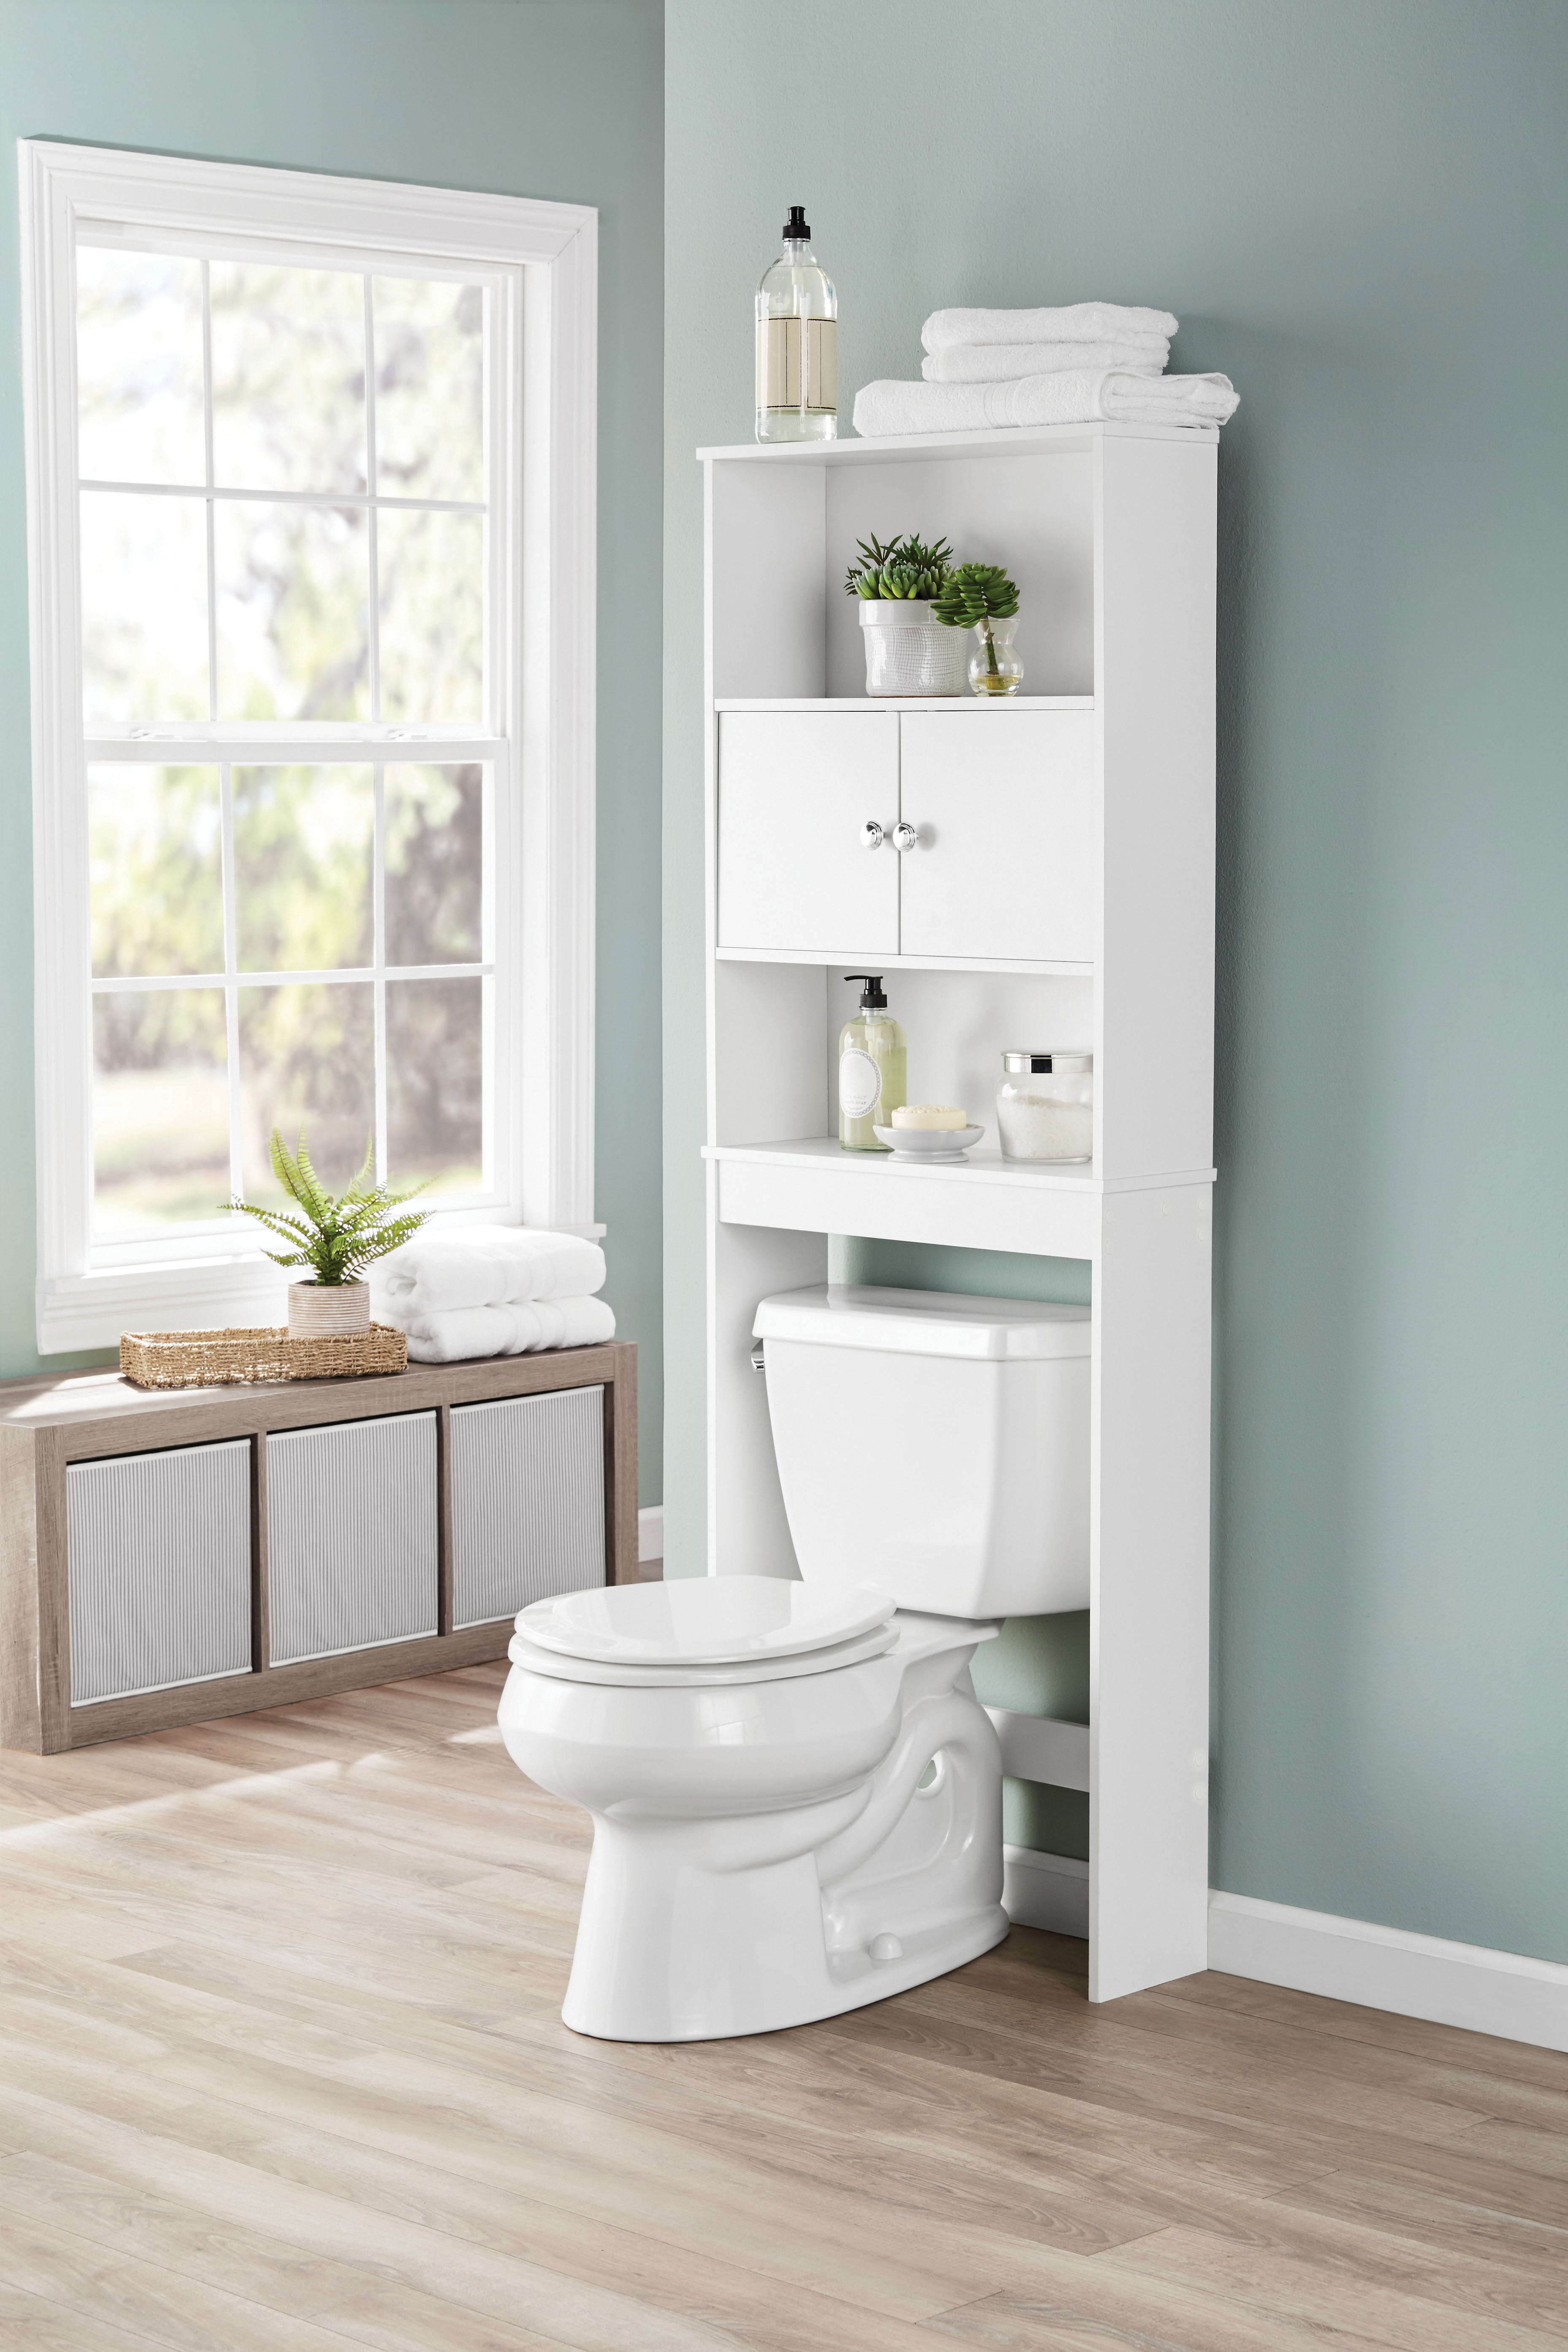 Over The Toilet Storage Organizer Wood Bathroom Space Saver Towel pertaining to dimensions 3717 X 5575